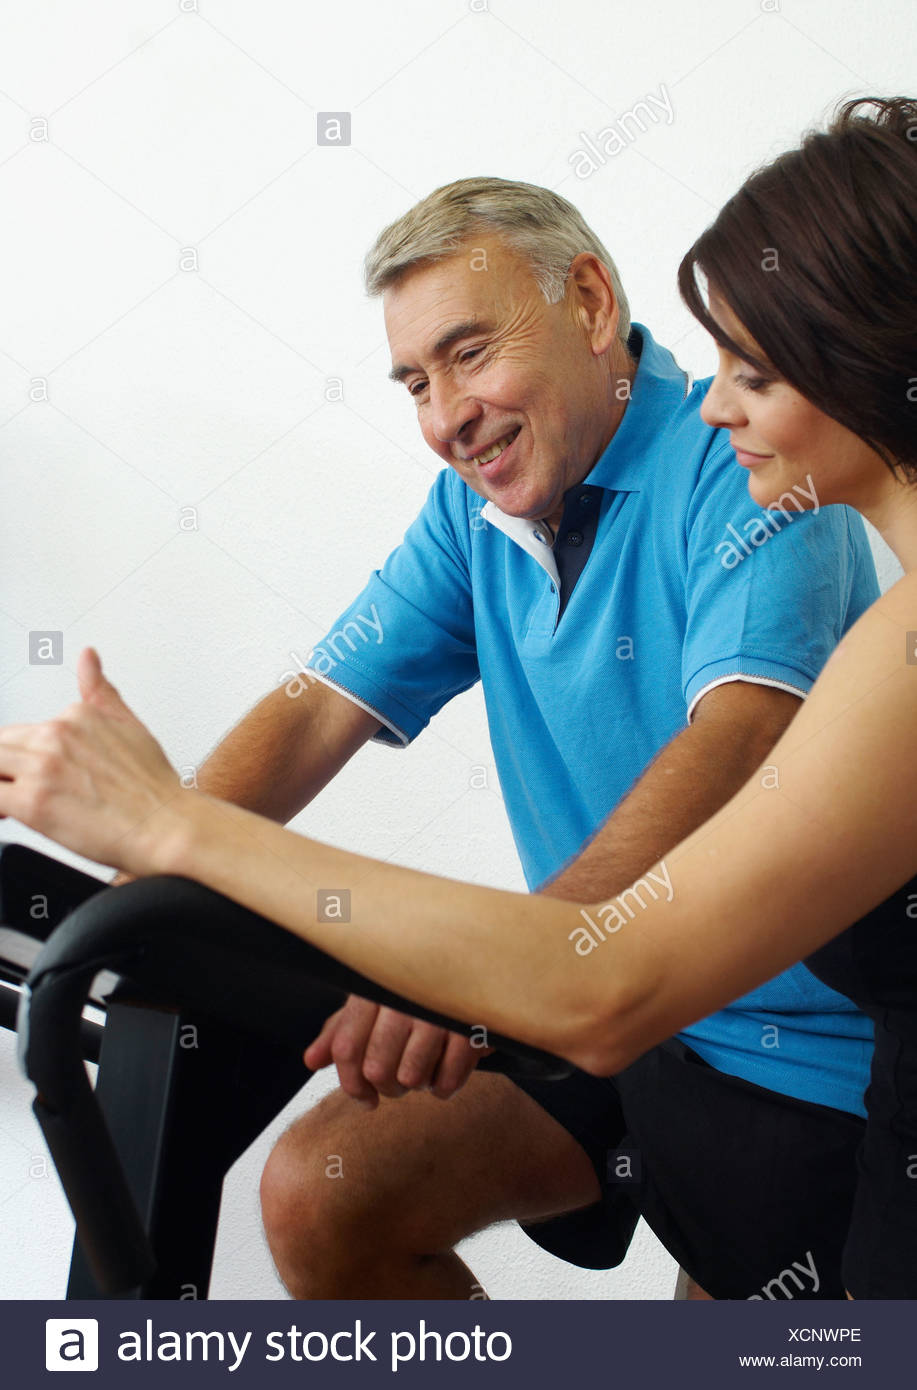 Woman and man in gym on exercise machines - Stock Image